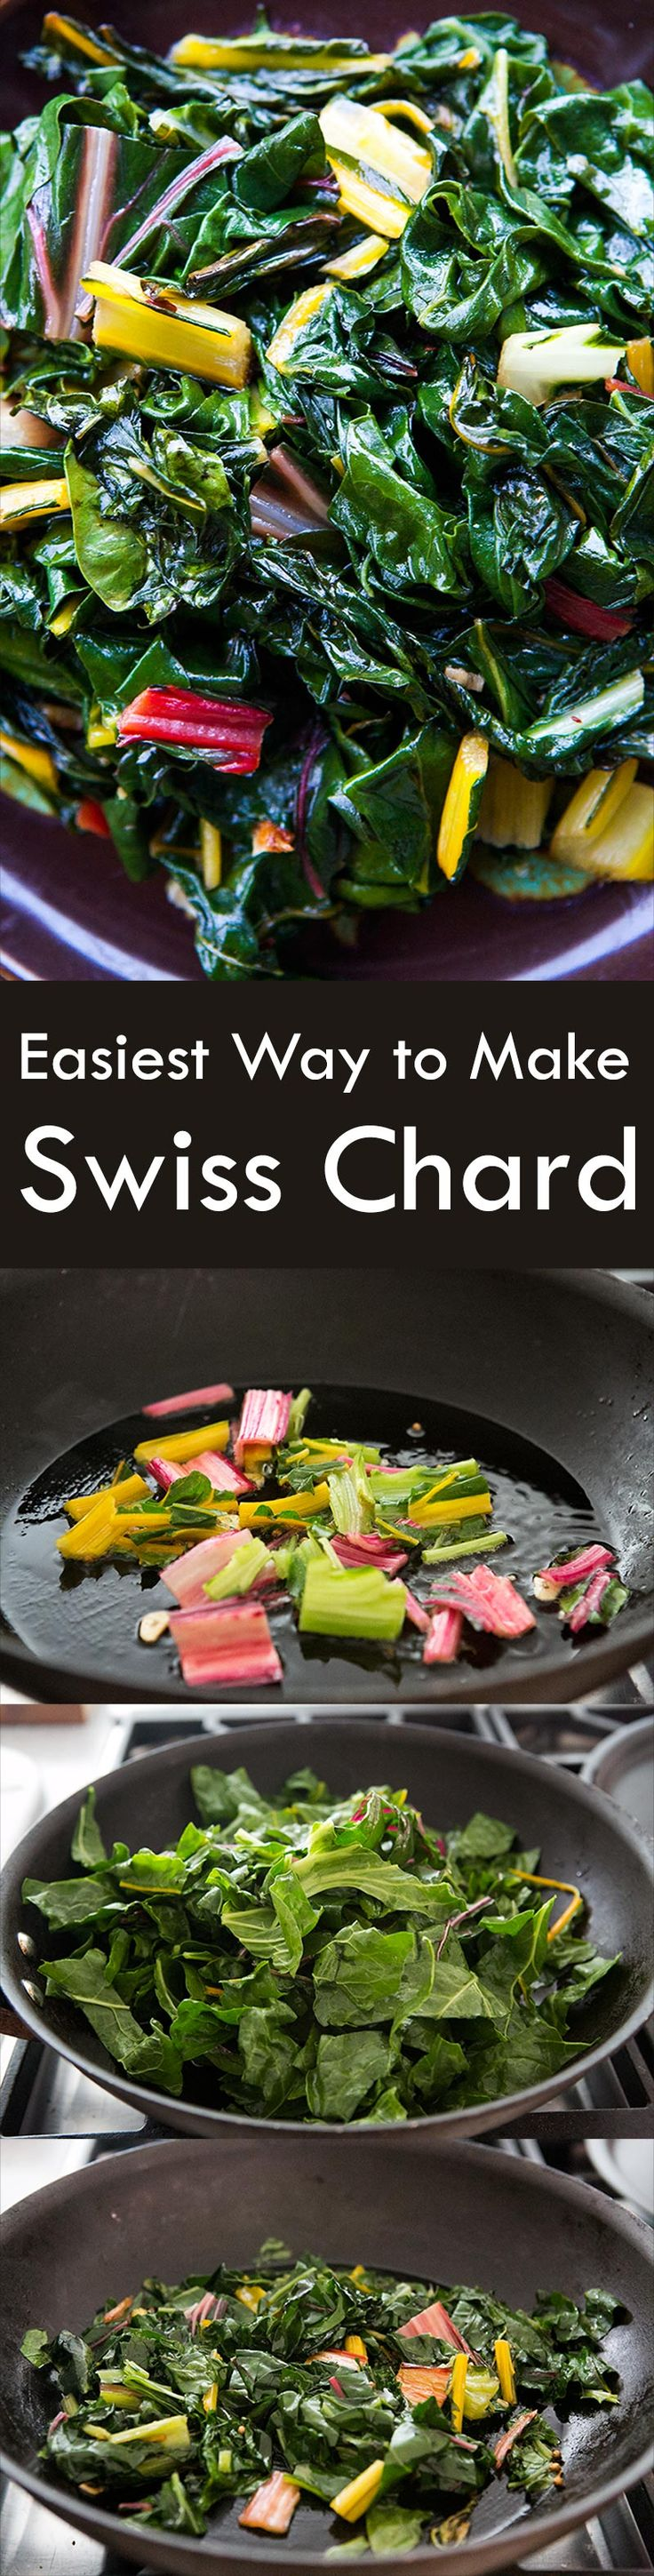 Easiest way to make Swiss chard! Just sautée in olive oil with garlic and crushed red pepper. On SimplyRecipes.com